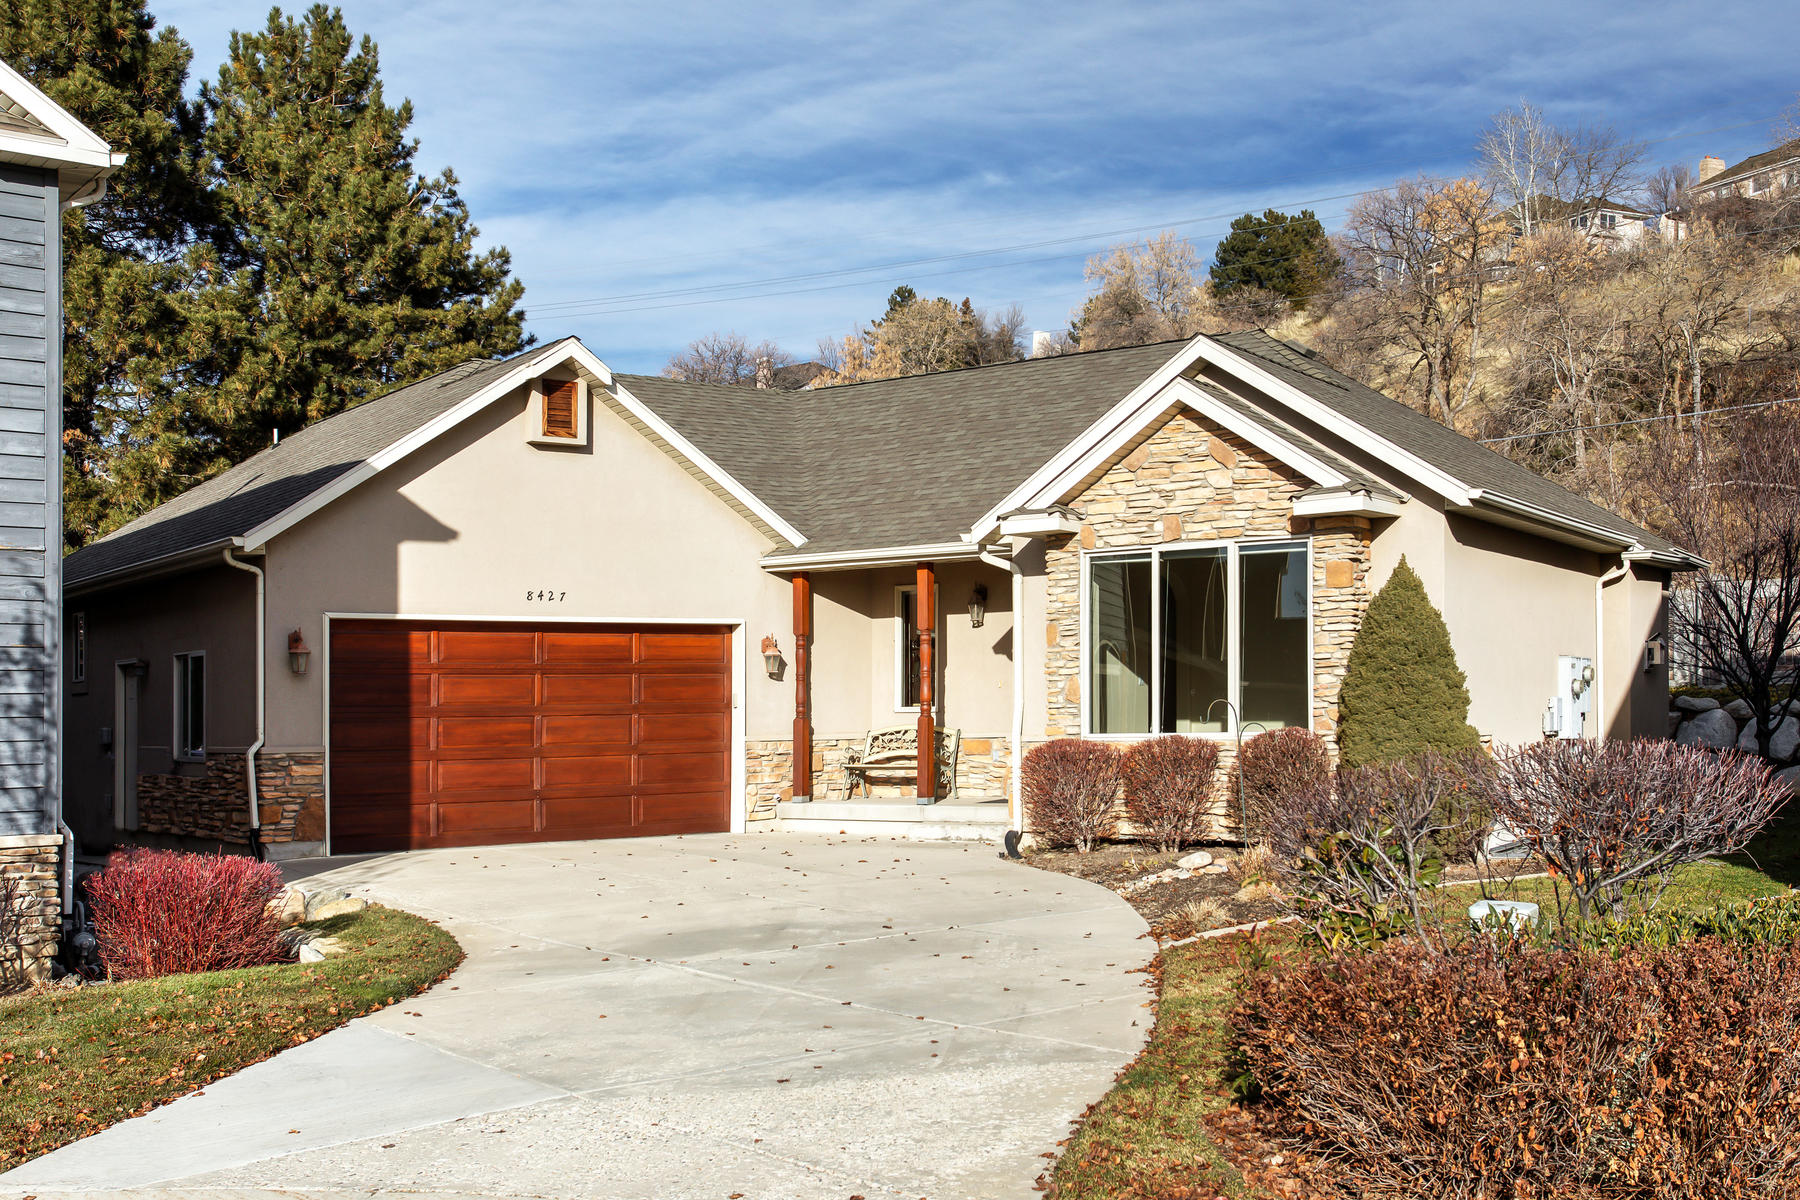 Single Family Homes for Sale at Clean & Well Maintained Rambler Located In The Private/Prestigious Lantern Hill 8427 S Lantern Hill Ct, Sandy, Utah 84093 United States